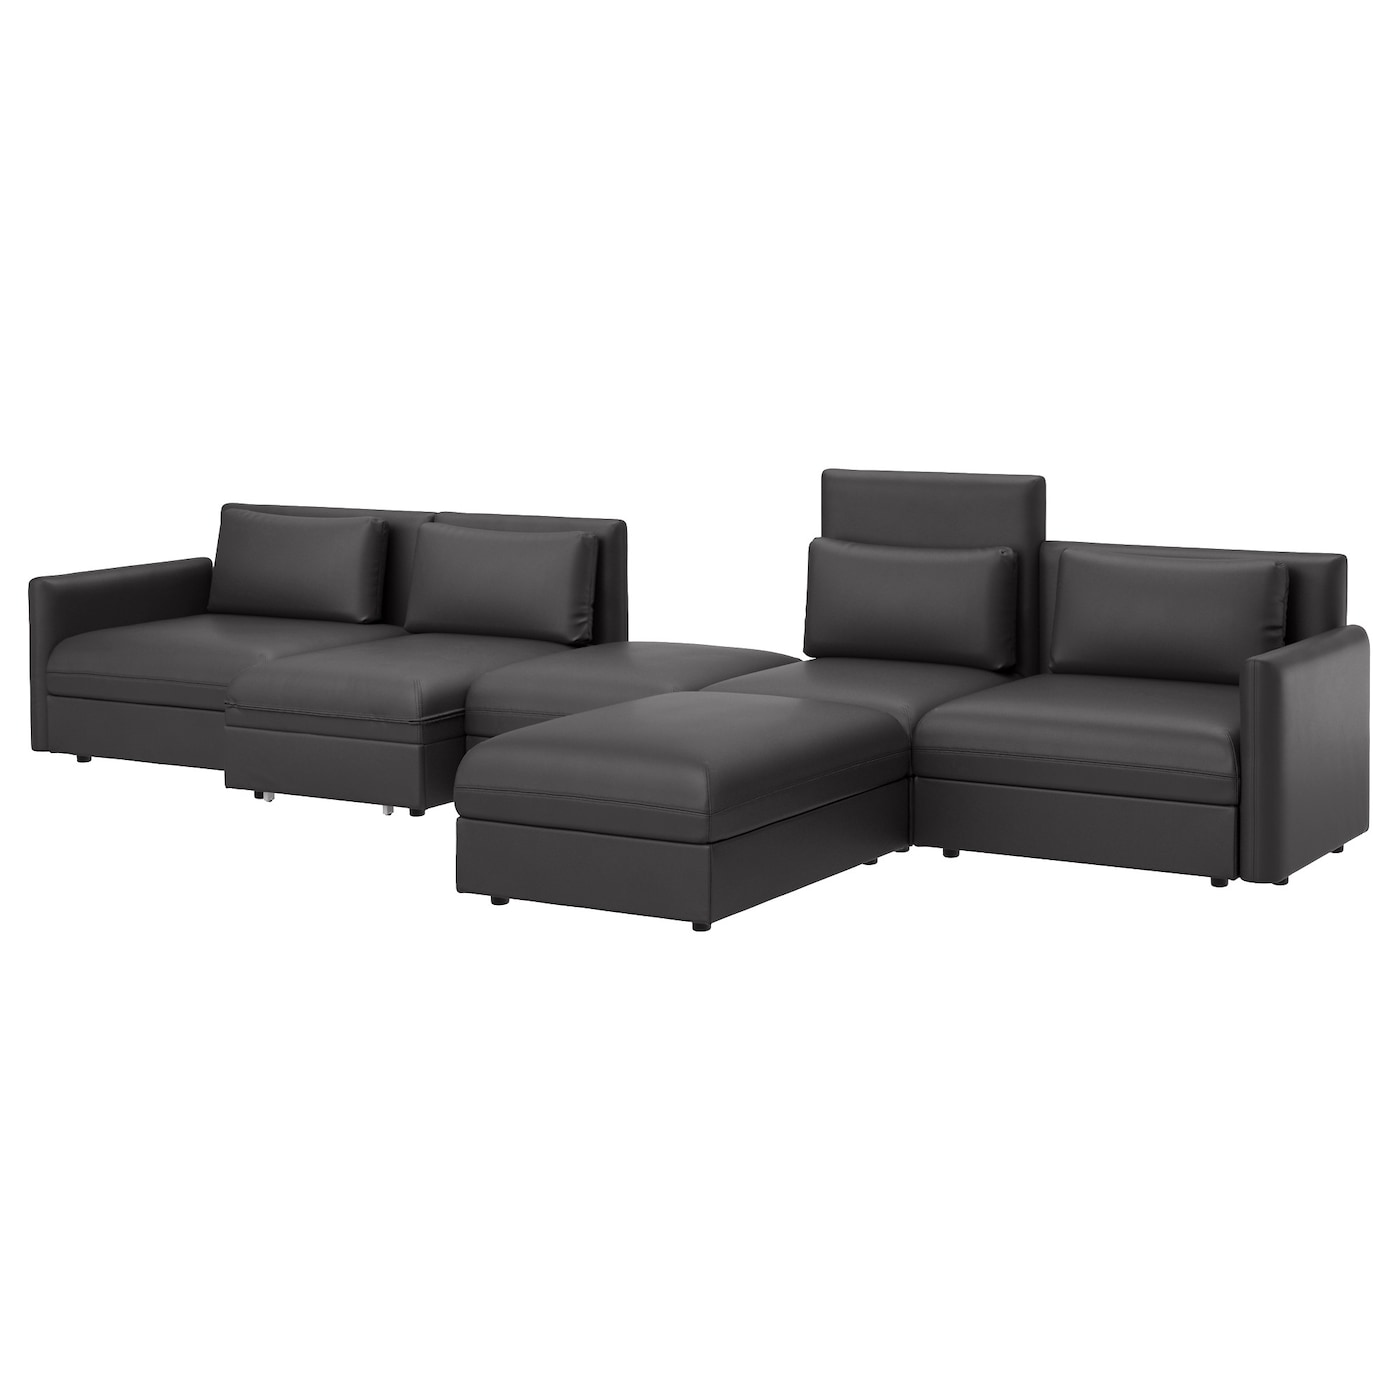 2 3 sitzer sofas online kaufen m bel suchmaschine. Black Bedroom Furniture Sets. Home Design Ideas